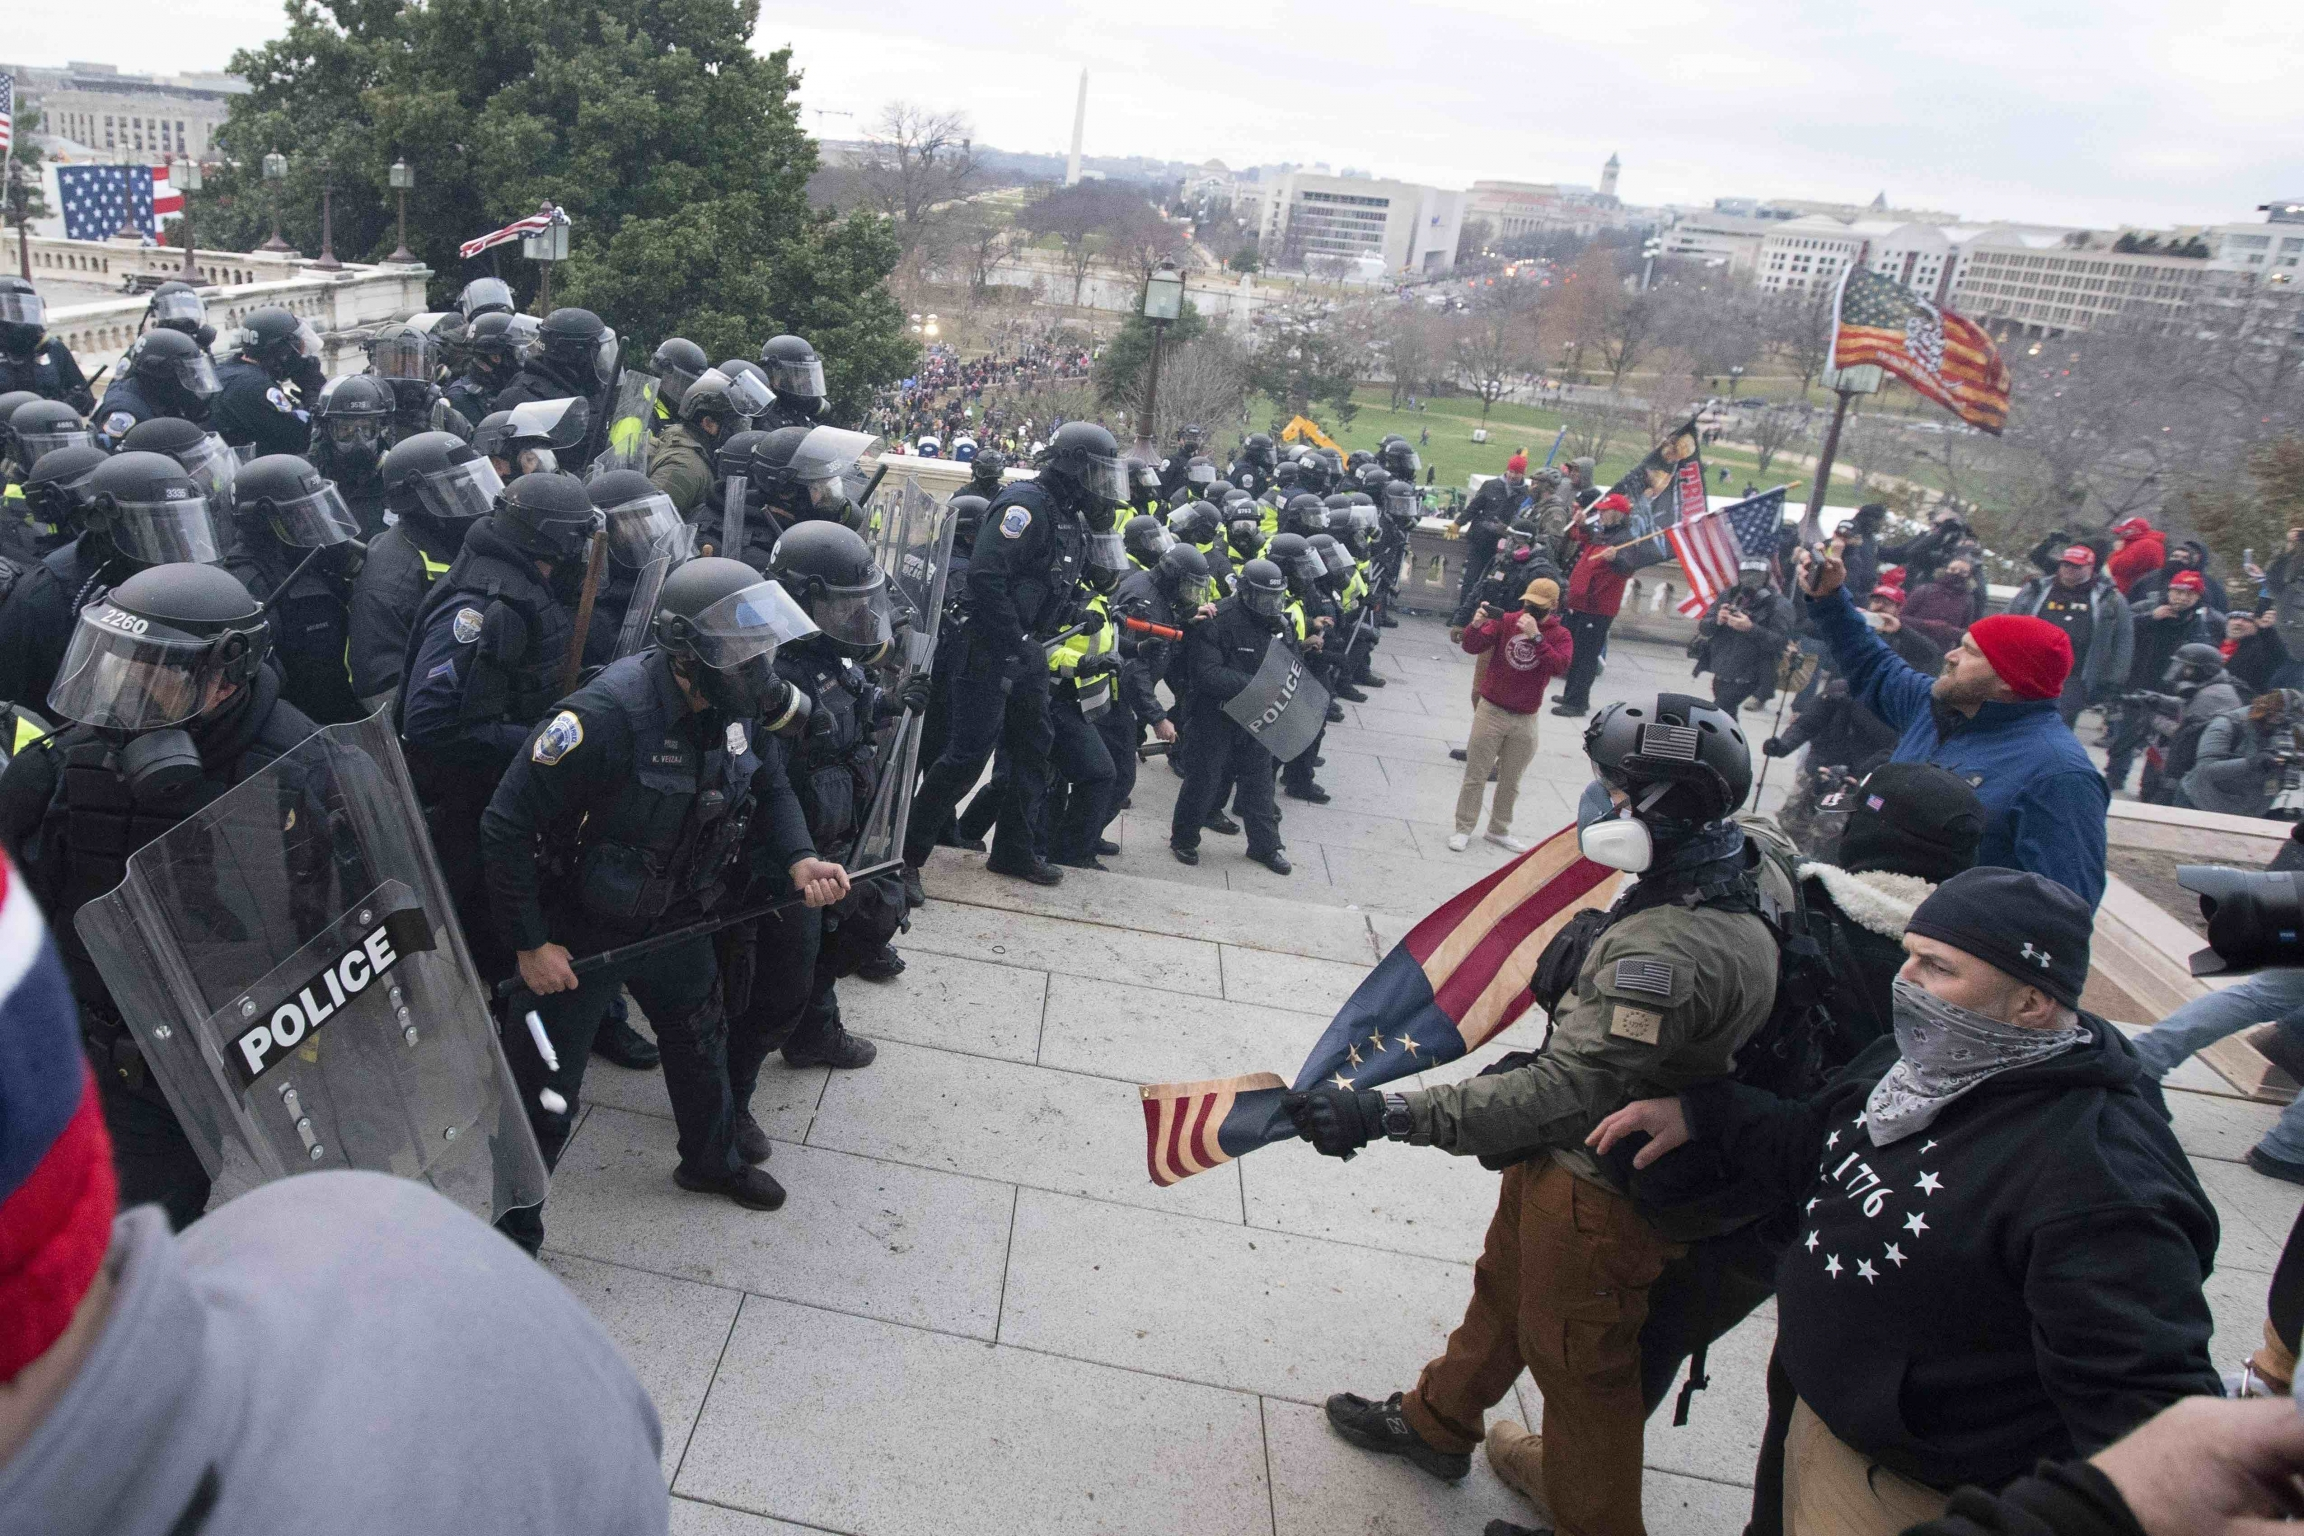 USCapitol Police push back rioters who were trying to enter the USCapitol on Wednesday, Jan. 6, 2021, in Washington, DC.